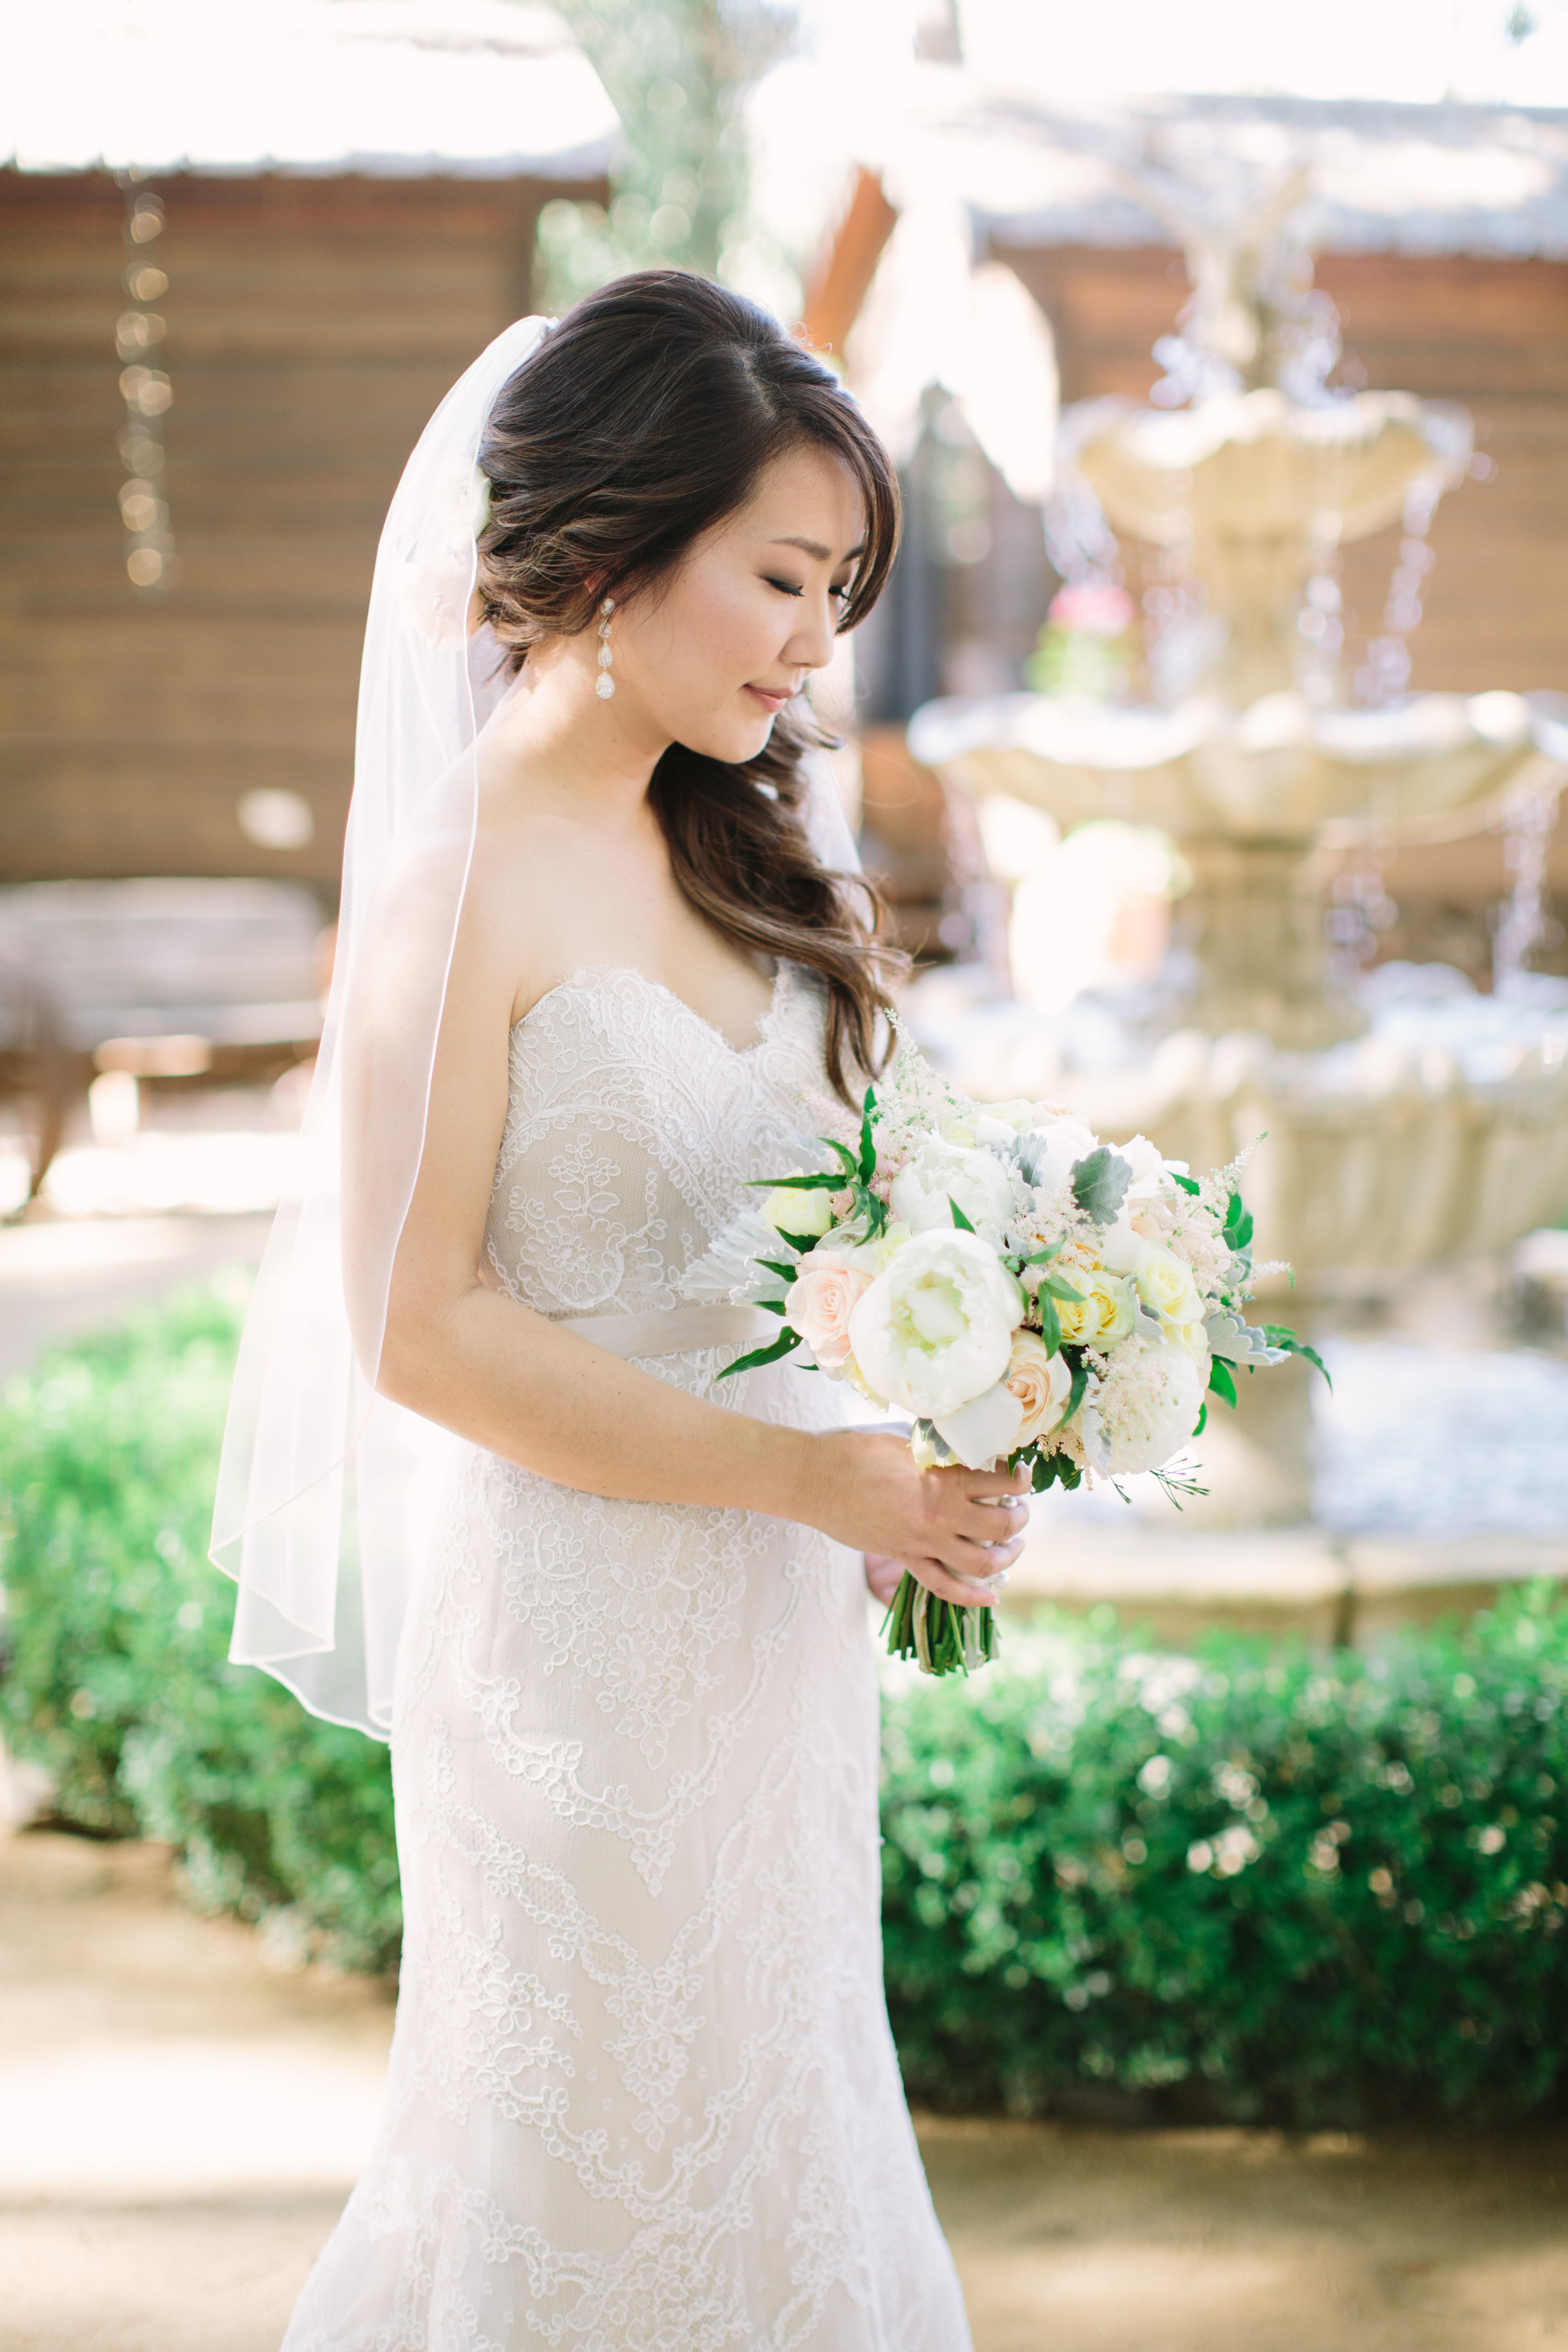 This-Love-of-Yours-Aya-and-Frank-Wedding-175.jpg